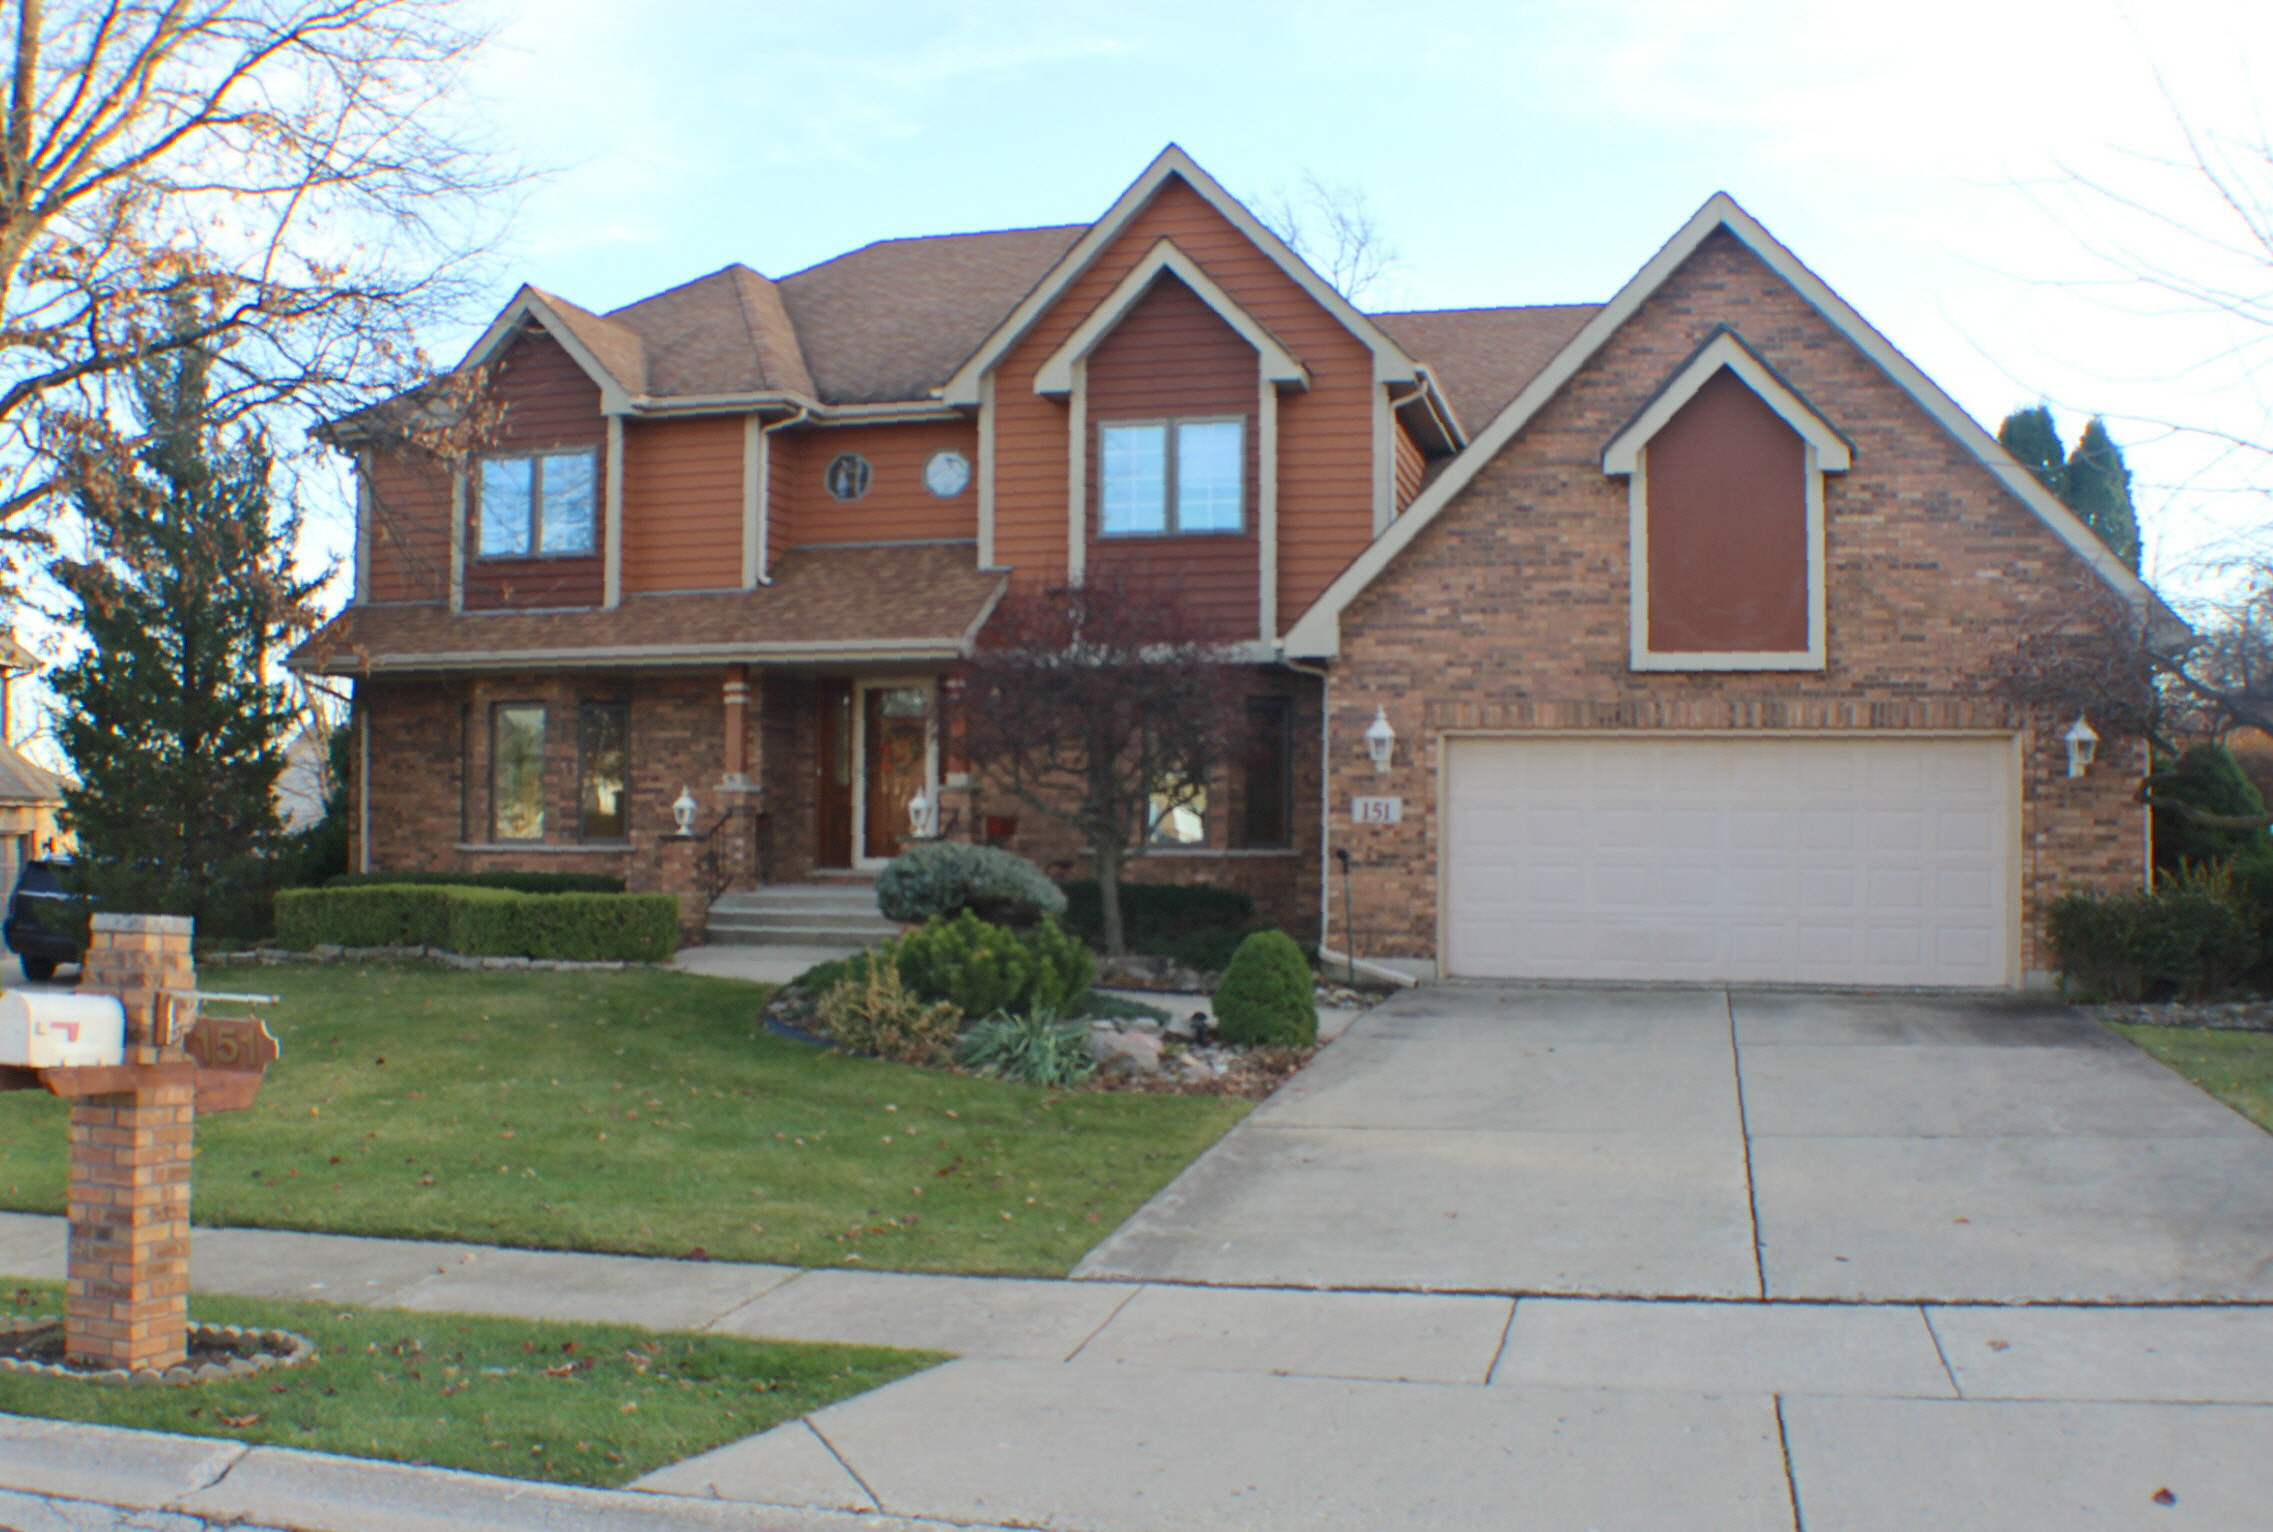 151 Founders Pointe S, Bloomingdale, Illinois 60108